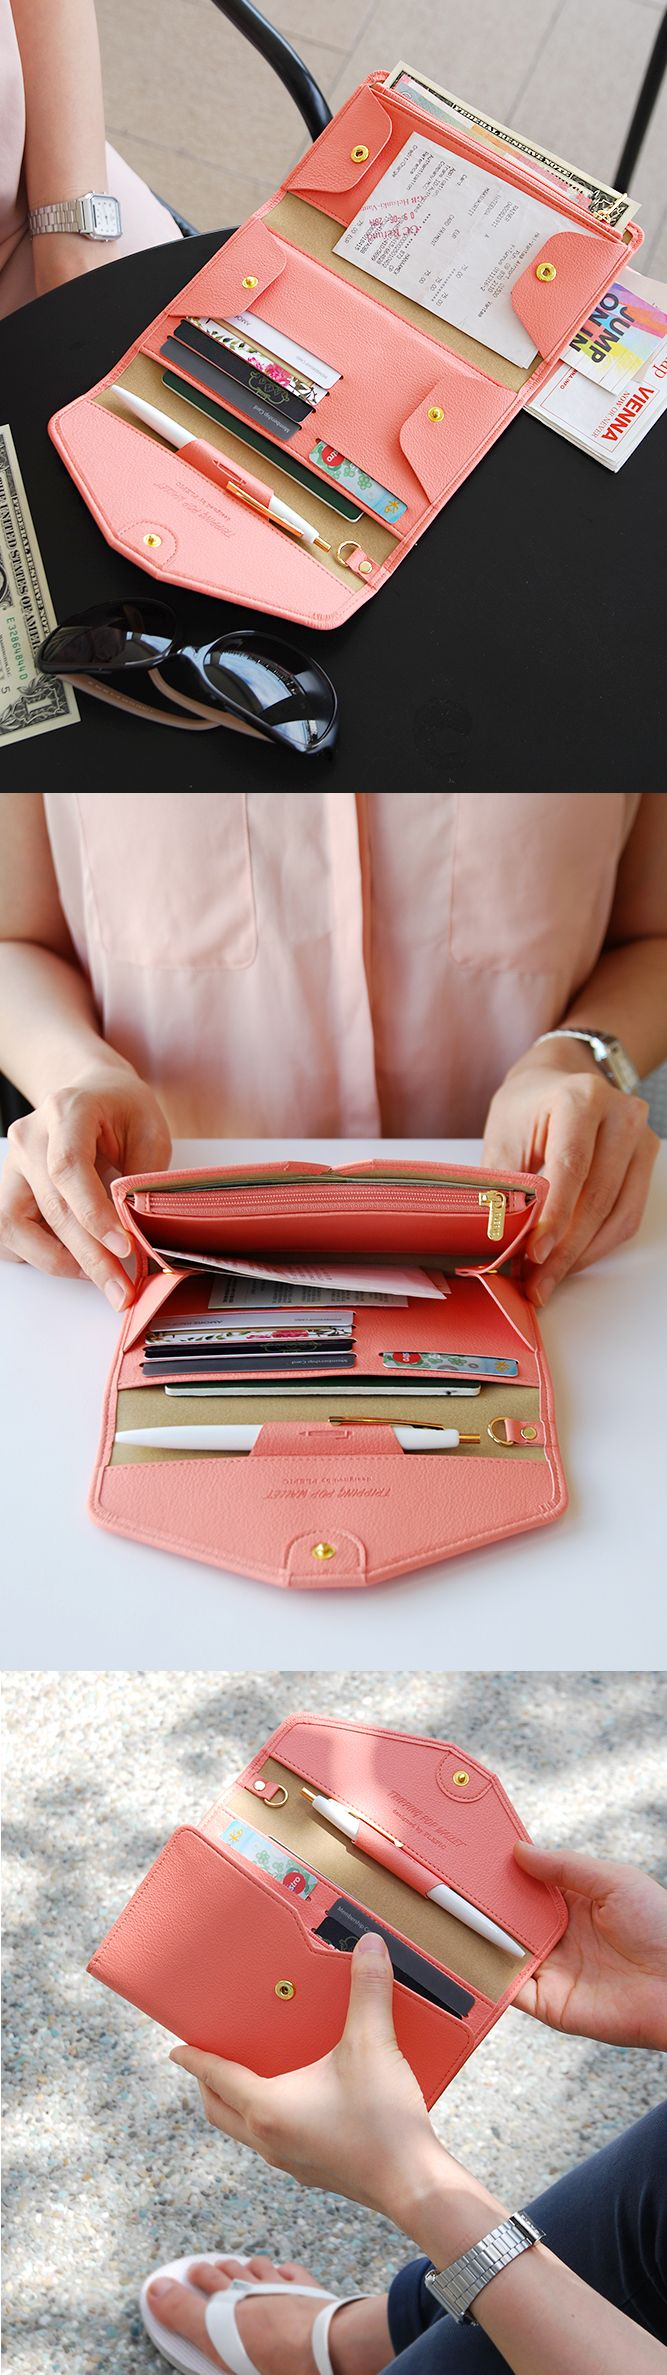 Oh my! This travel must-have is definitely going on my wishlist! The cute and colorful All-in-One Leather Pop Clutch is the new way to travel simply! It has plenty of pockets and space for my cards, cash, and coins as well as a pen, key, and even my passport! Why carry everything separately when I can have all my travel essentials in one convenient (and stylish) accessory? Don't be weighed down by a heavy and bulky purse. Instead, be empowered to travel lightly and check out this super…